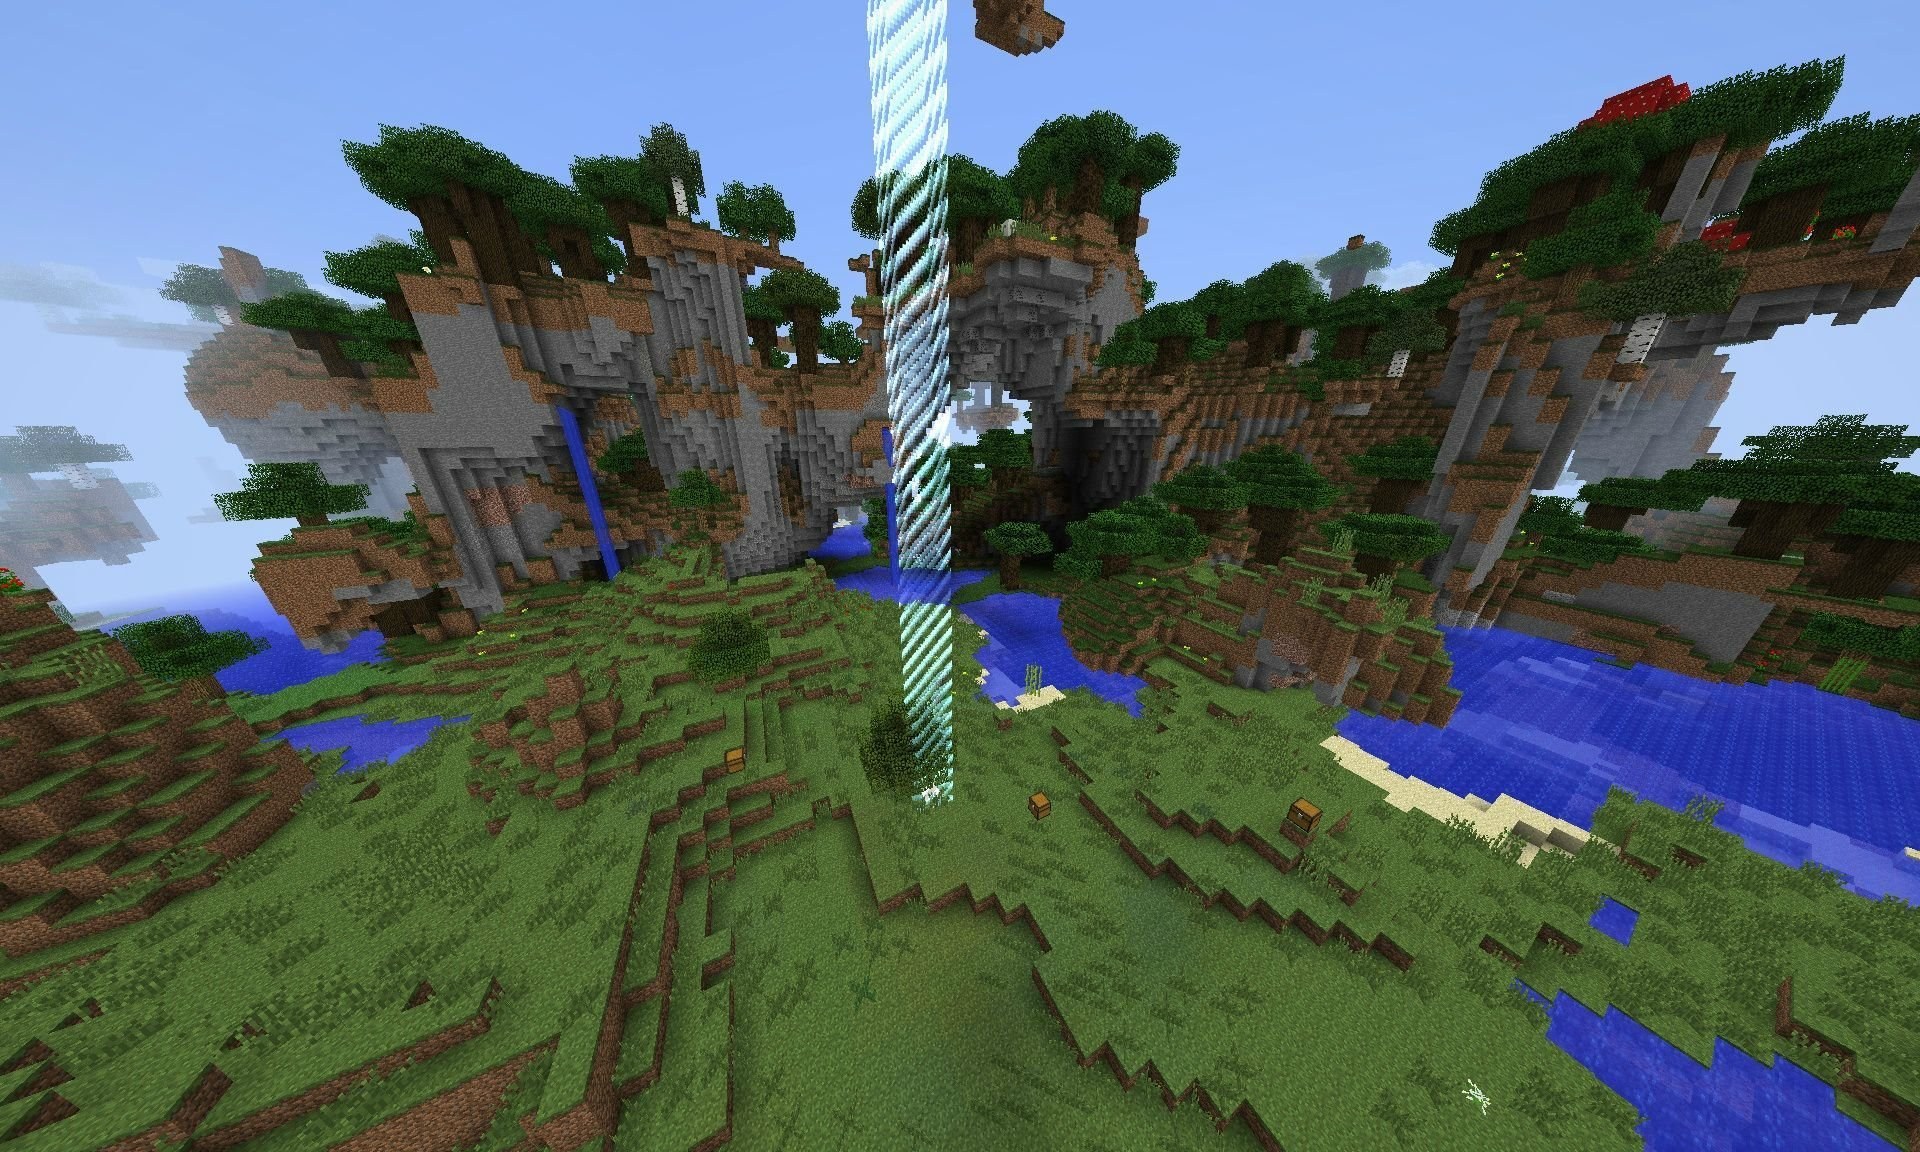 A screenshot showing the first world border that you're stuck inside before completing any challenges